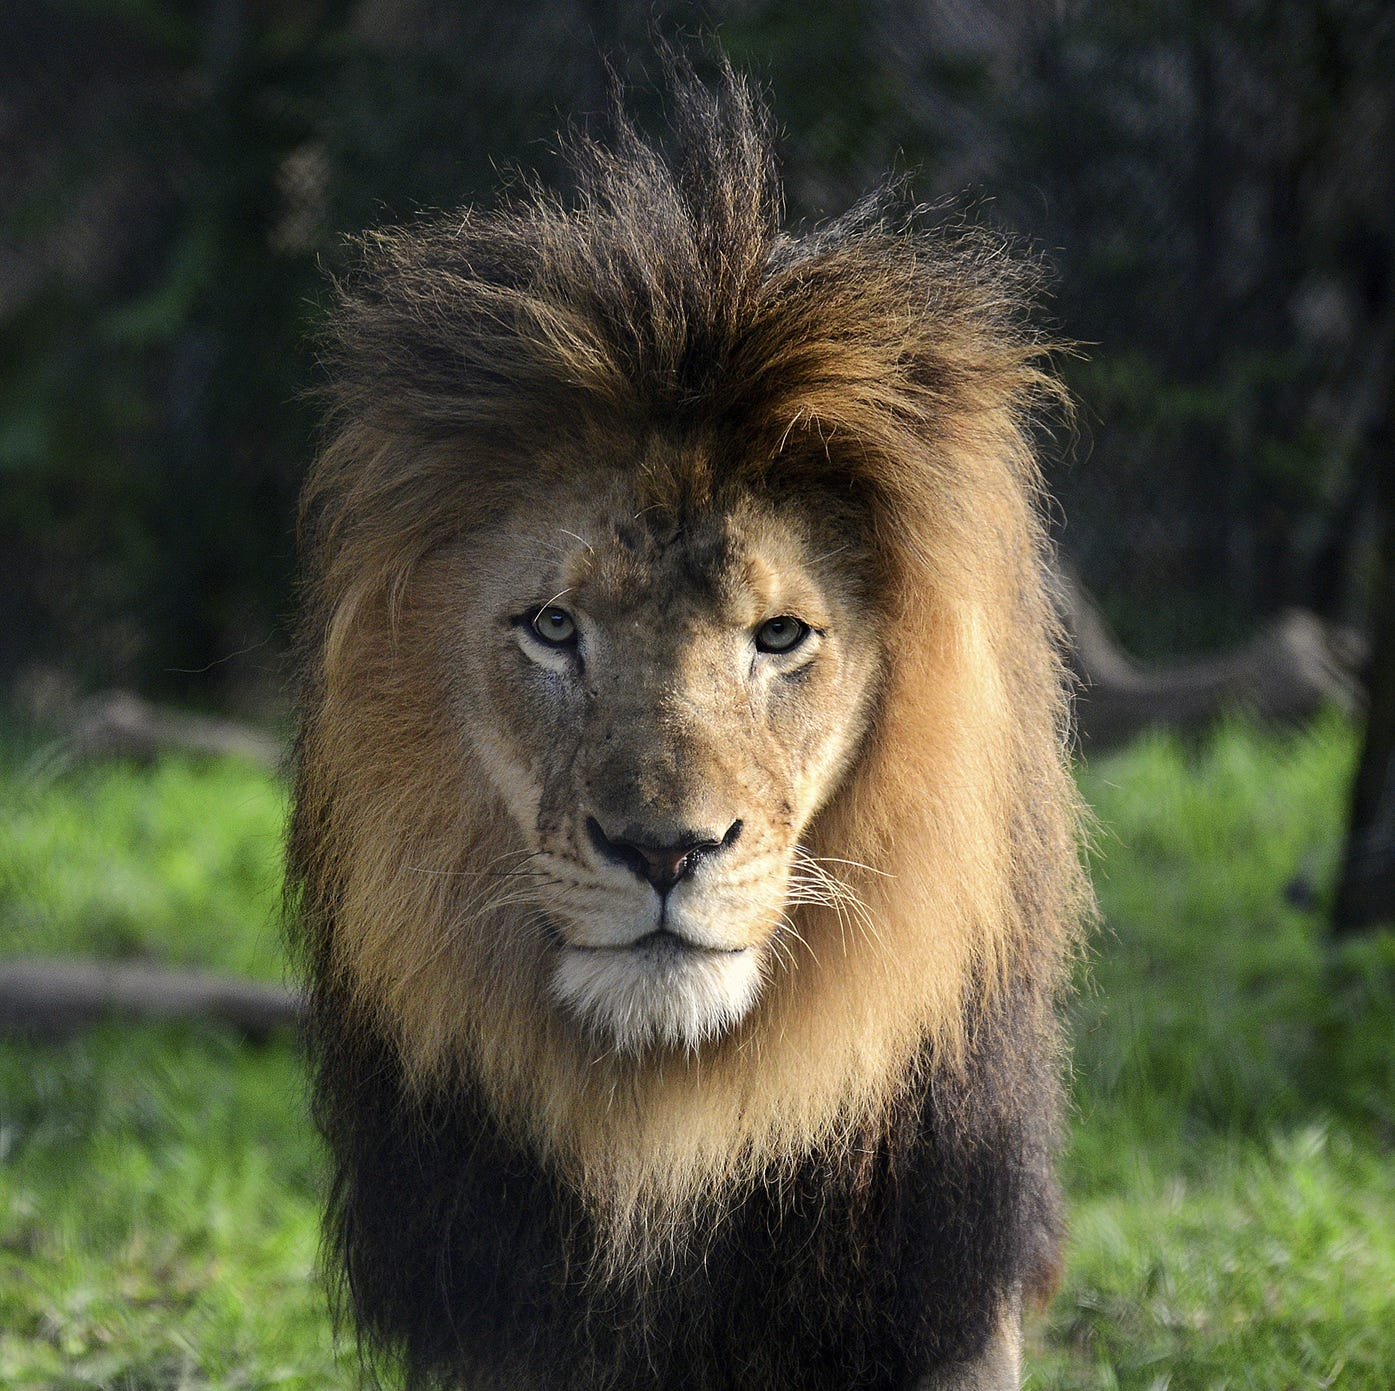 Indianapolis Zoo: Lion dies after it was fatally injured by another lion